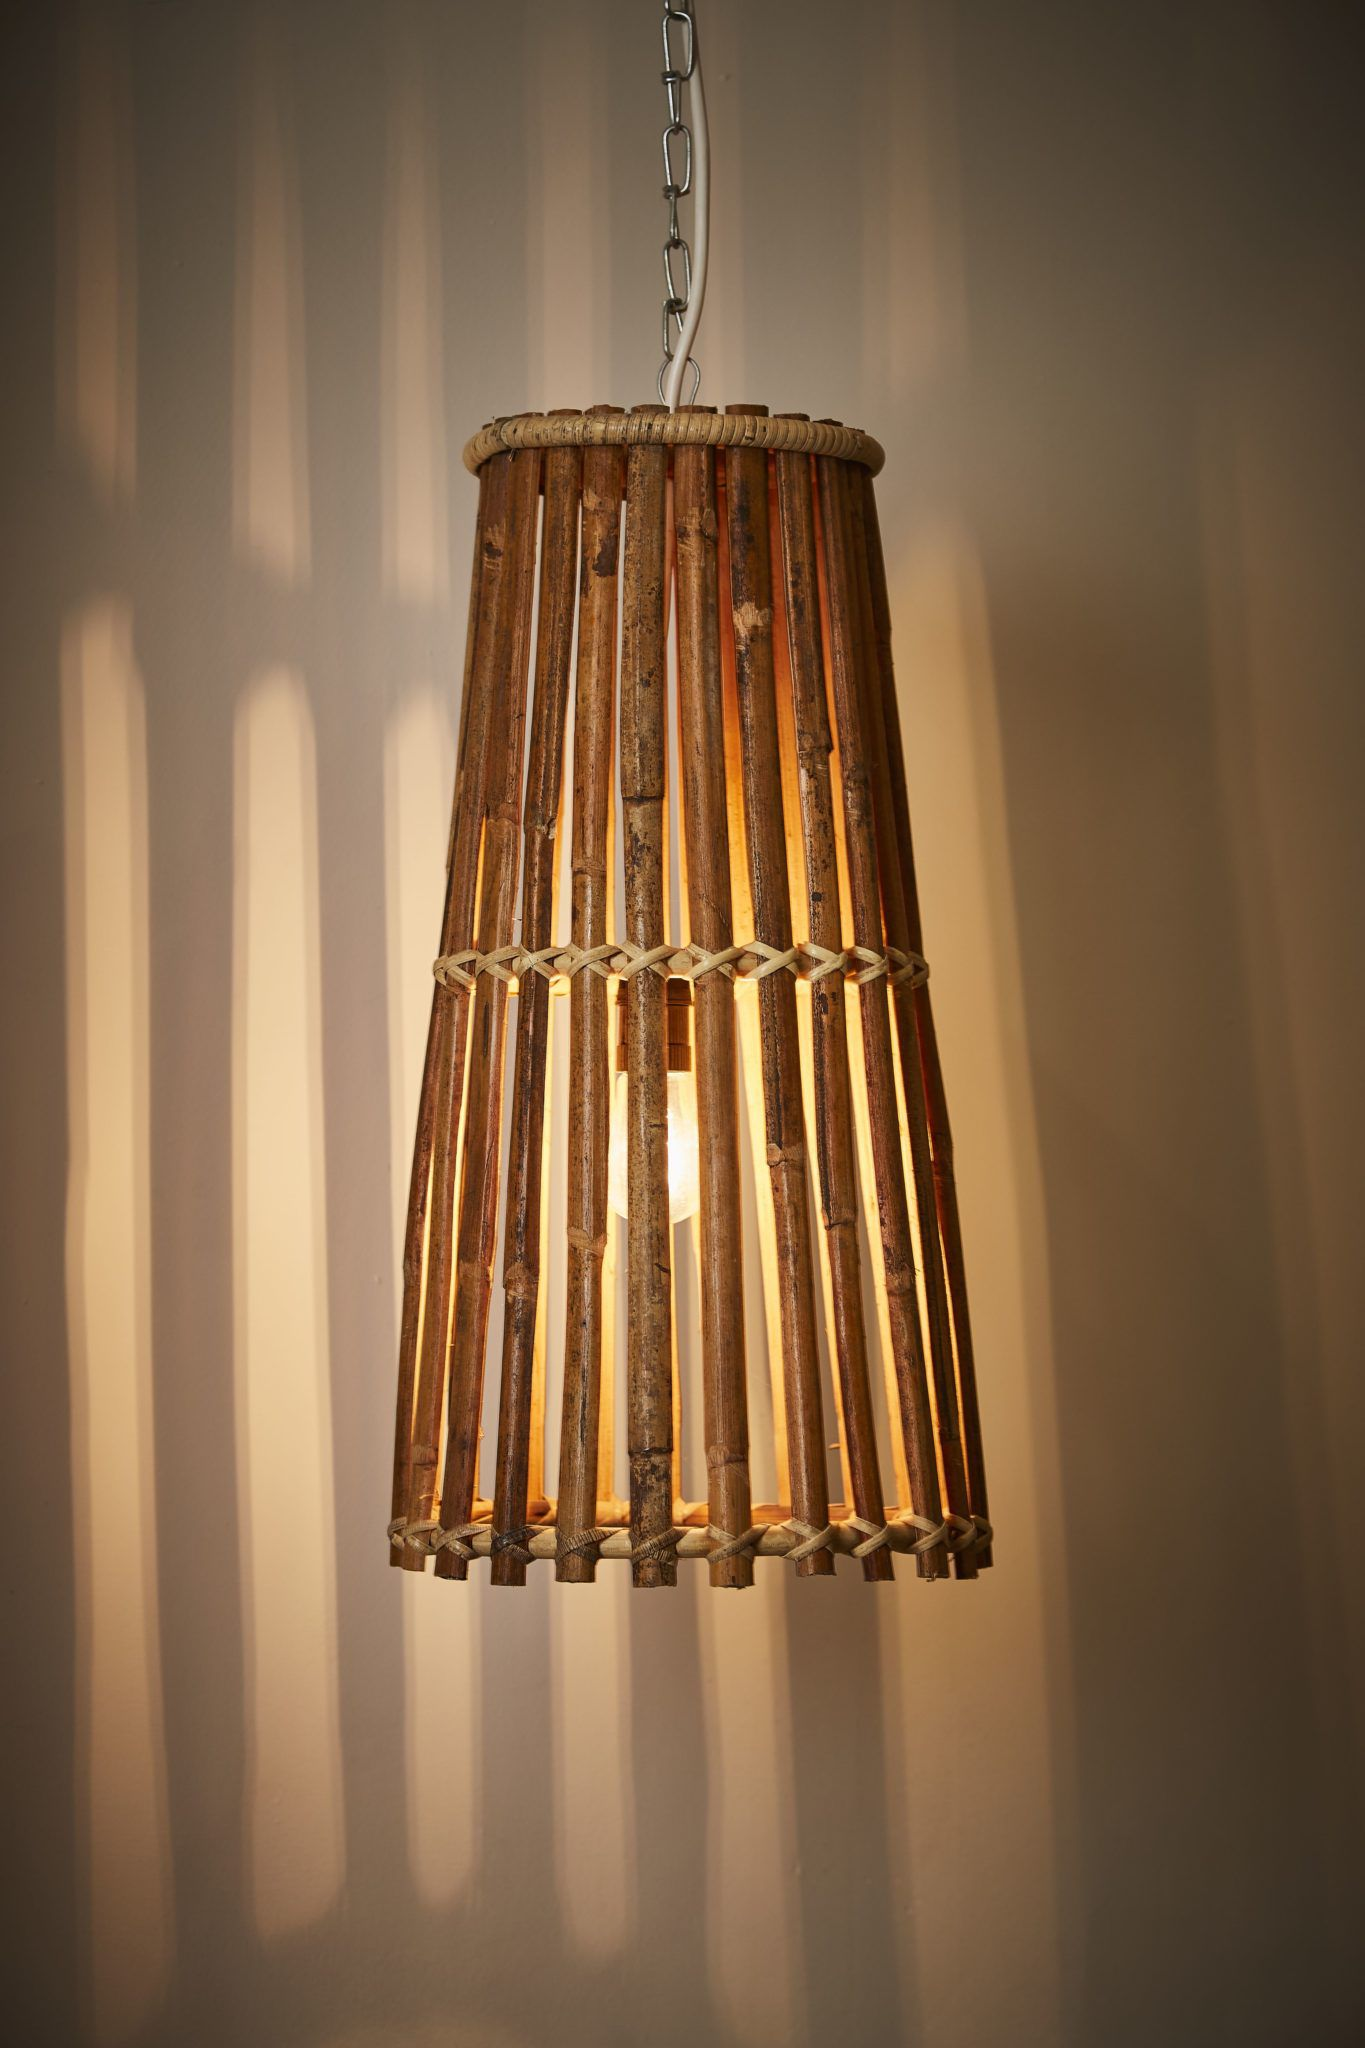 rattan-pendant-in-situ-1